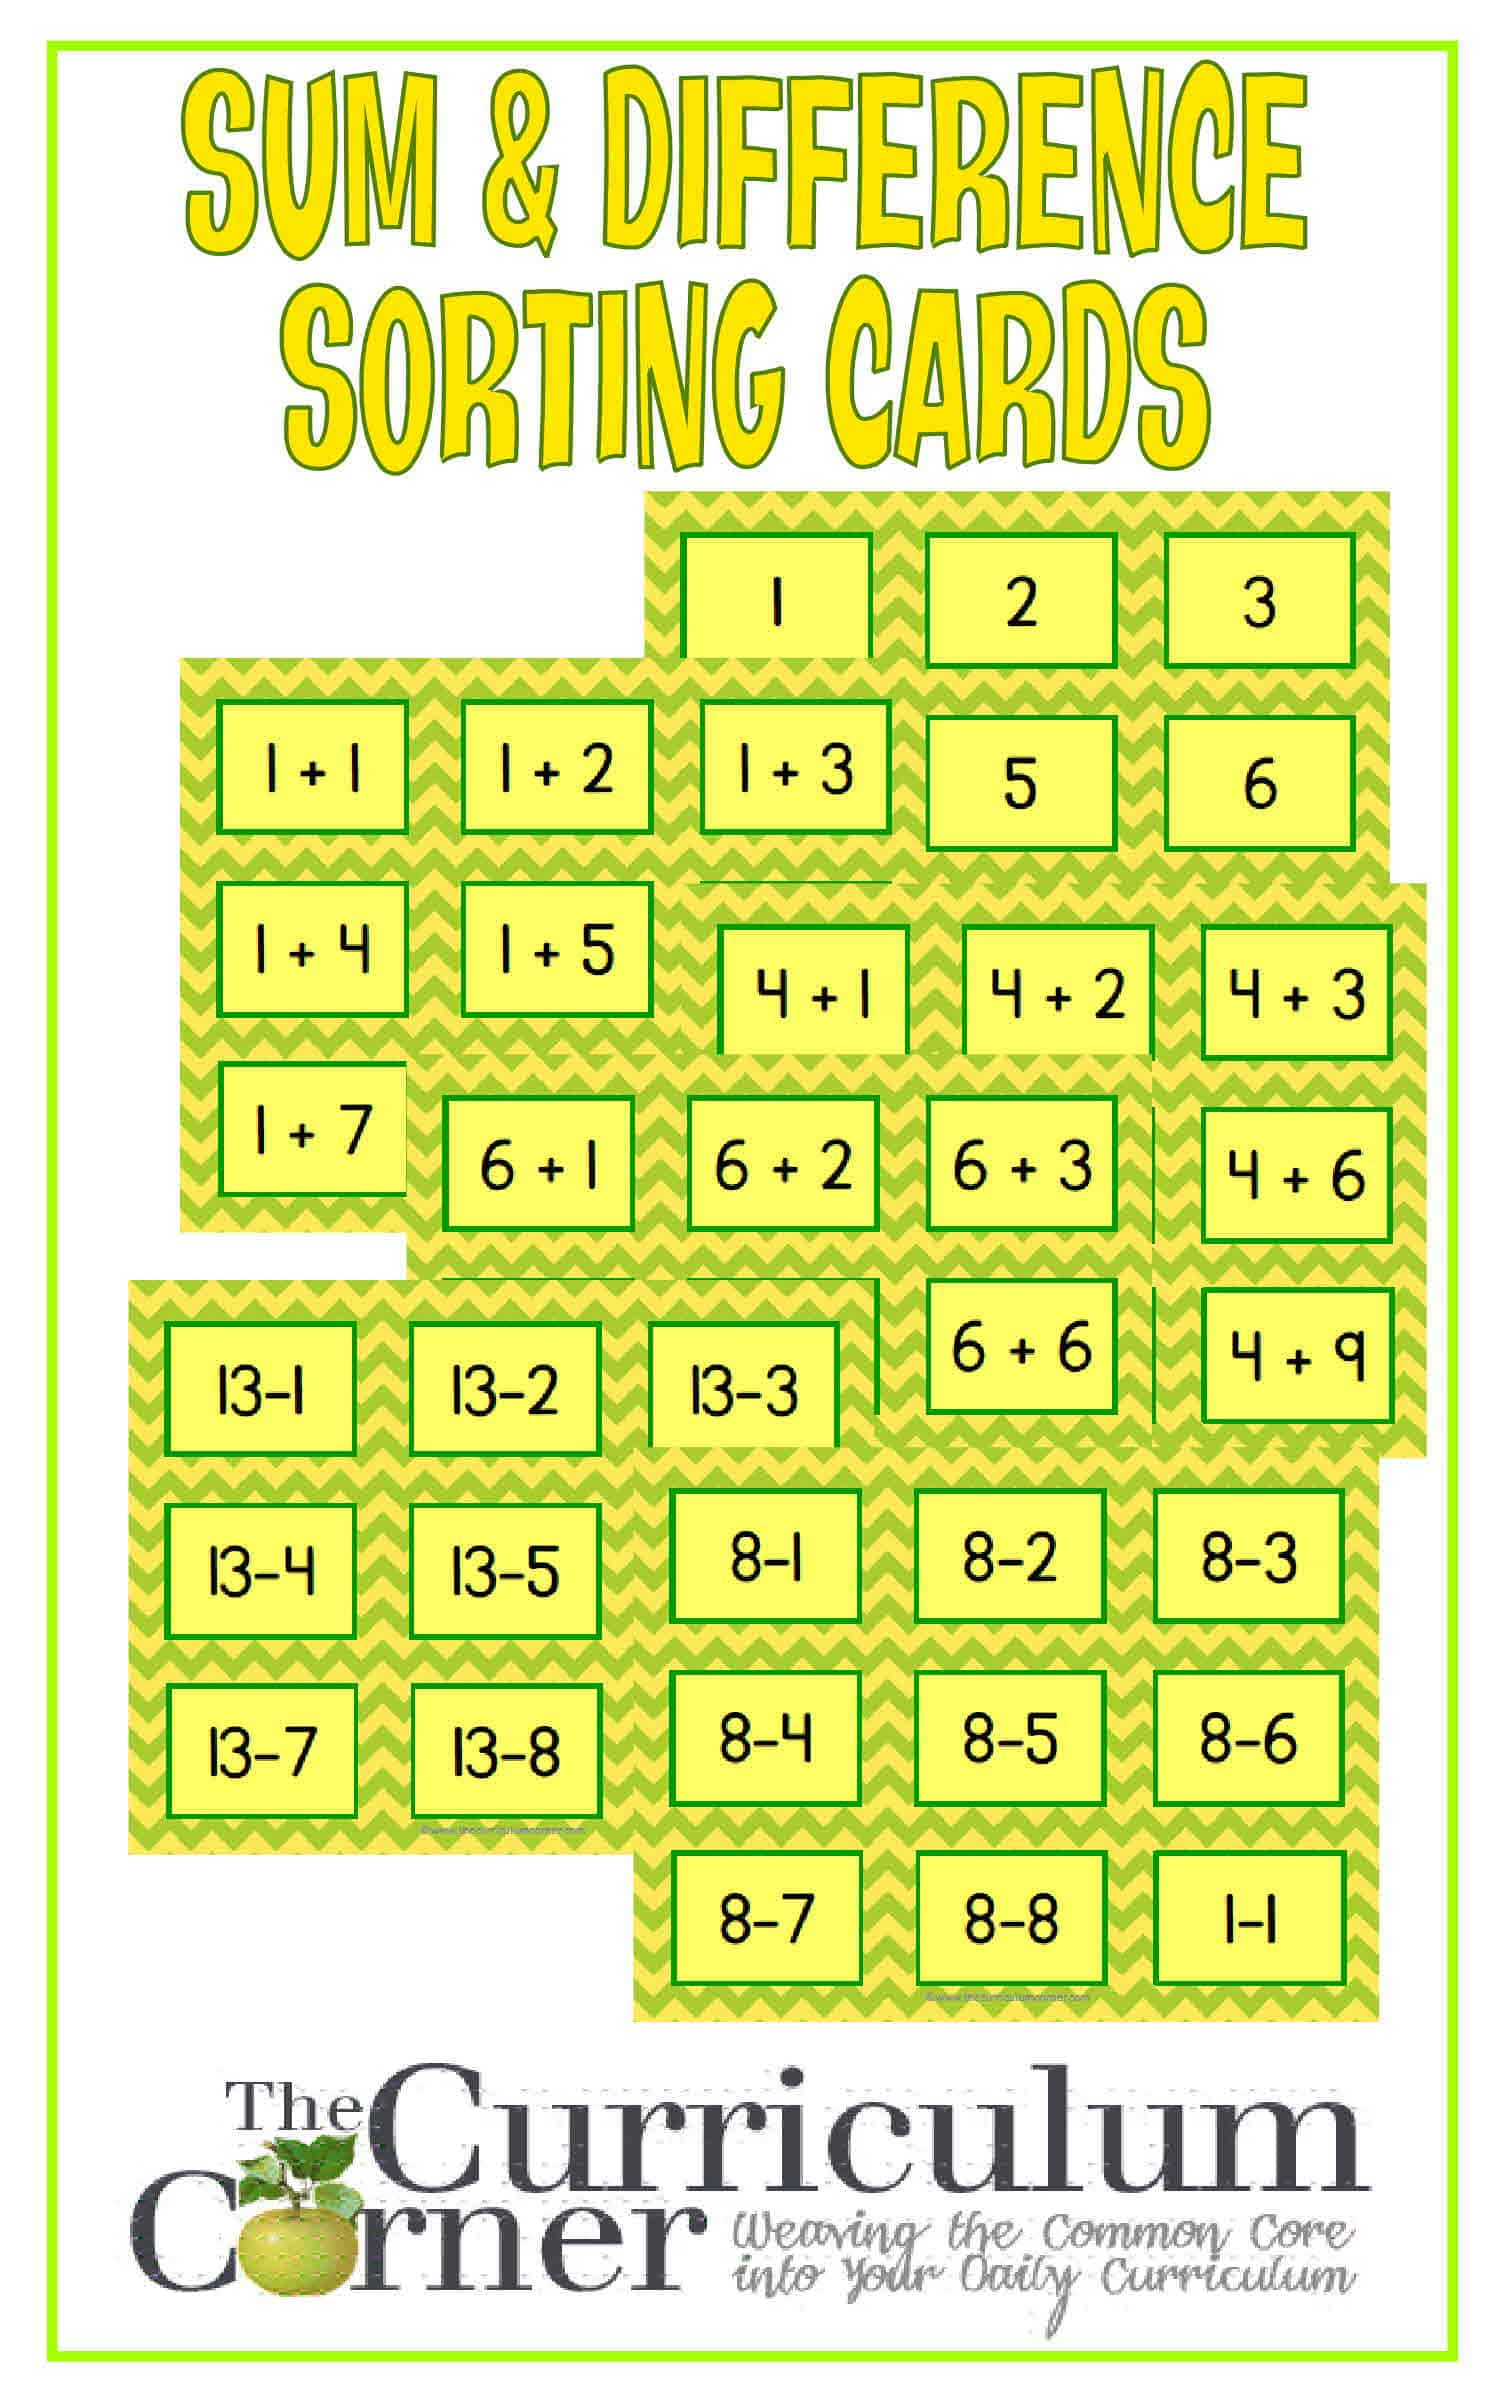 Sum & Difference Sorting Cards